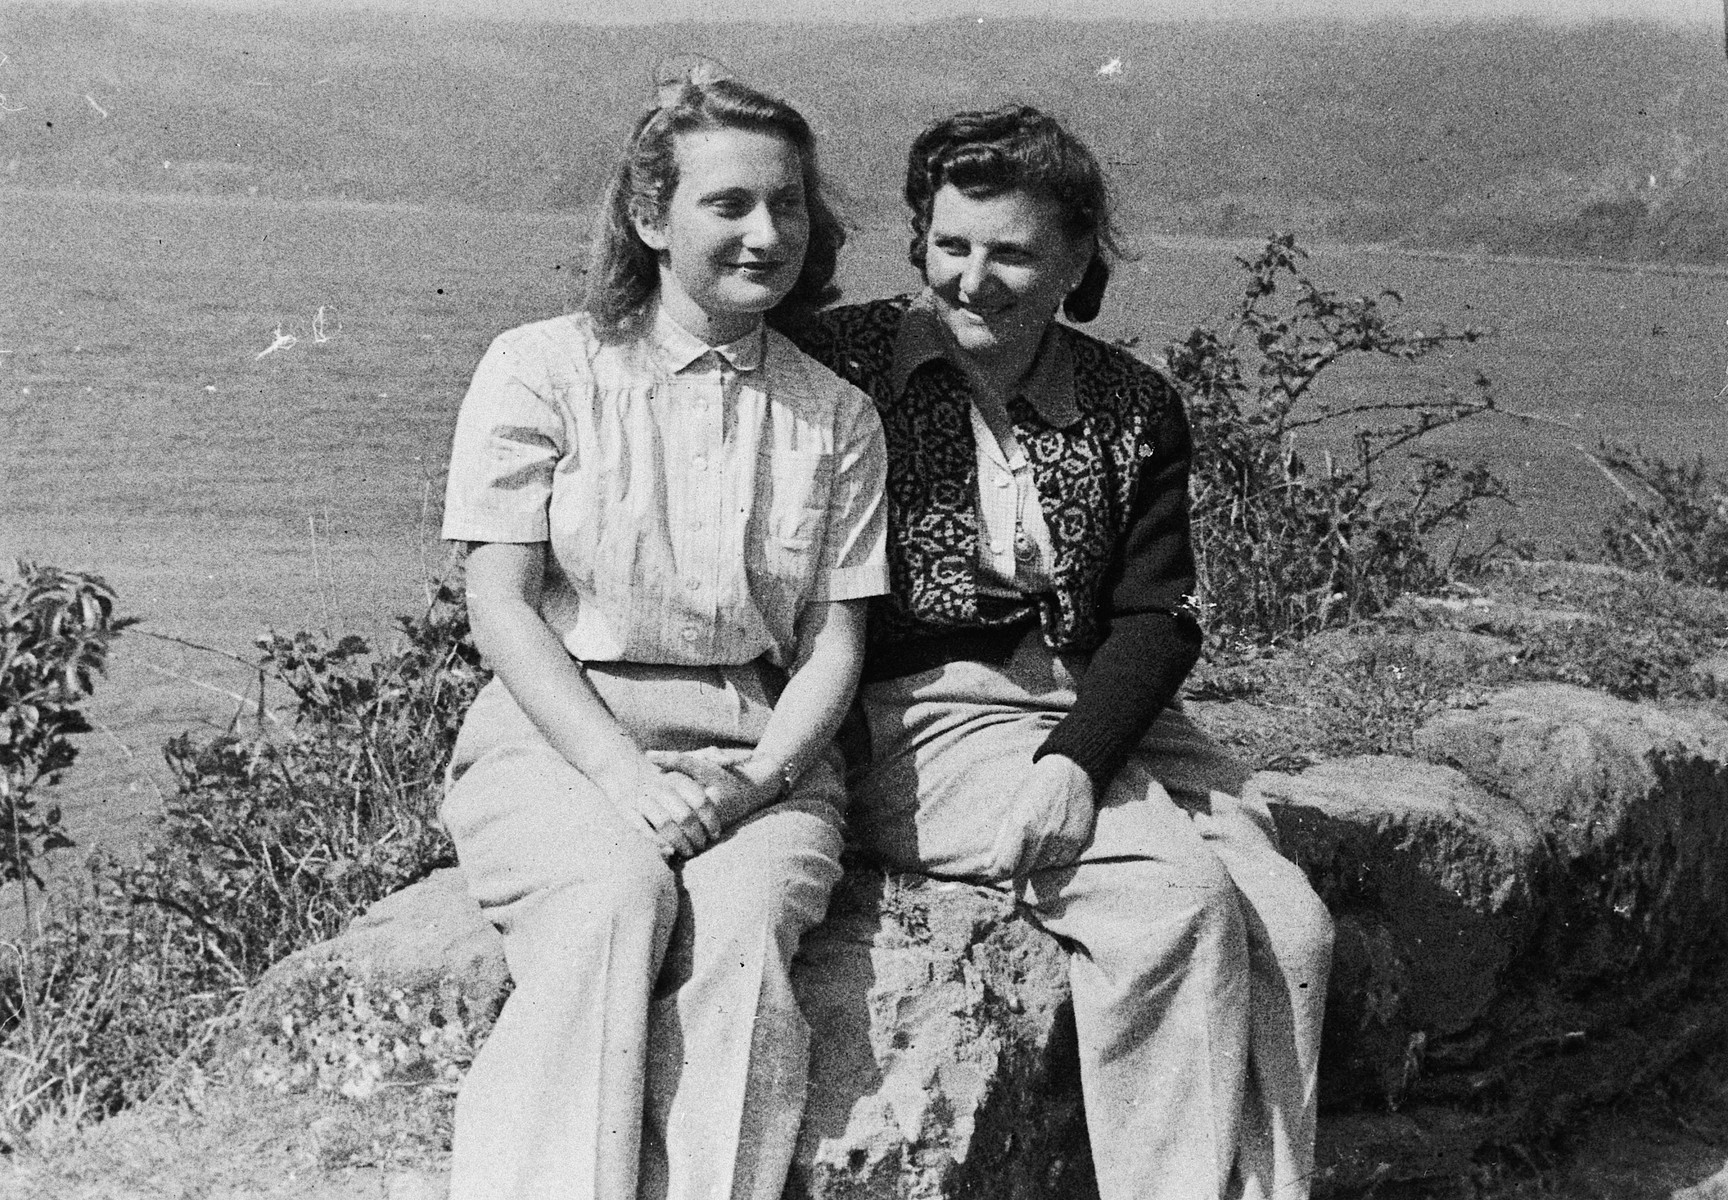 A mother and daughter, recent immigrants to Chile and survivors of Nazi concentration camps, pose outdoors together.  Pictured are Katerina Margolius and Ines Margolius Renner.